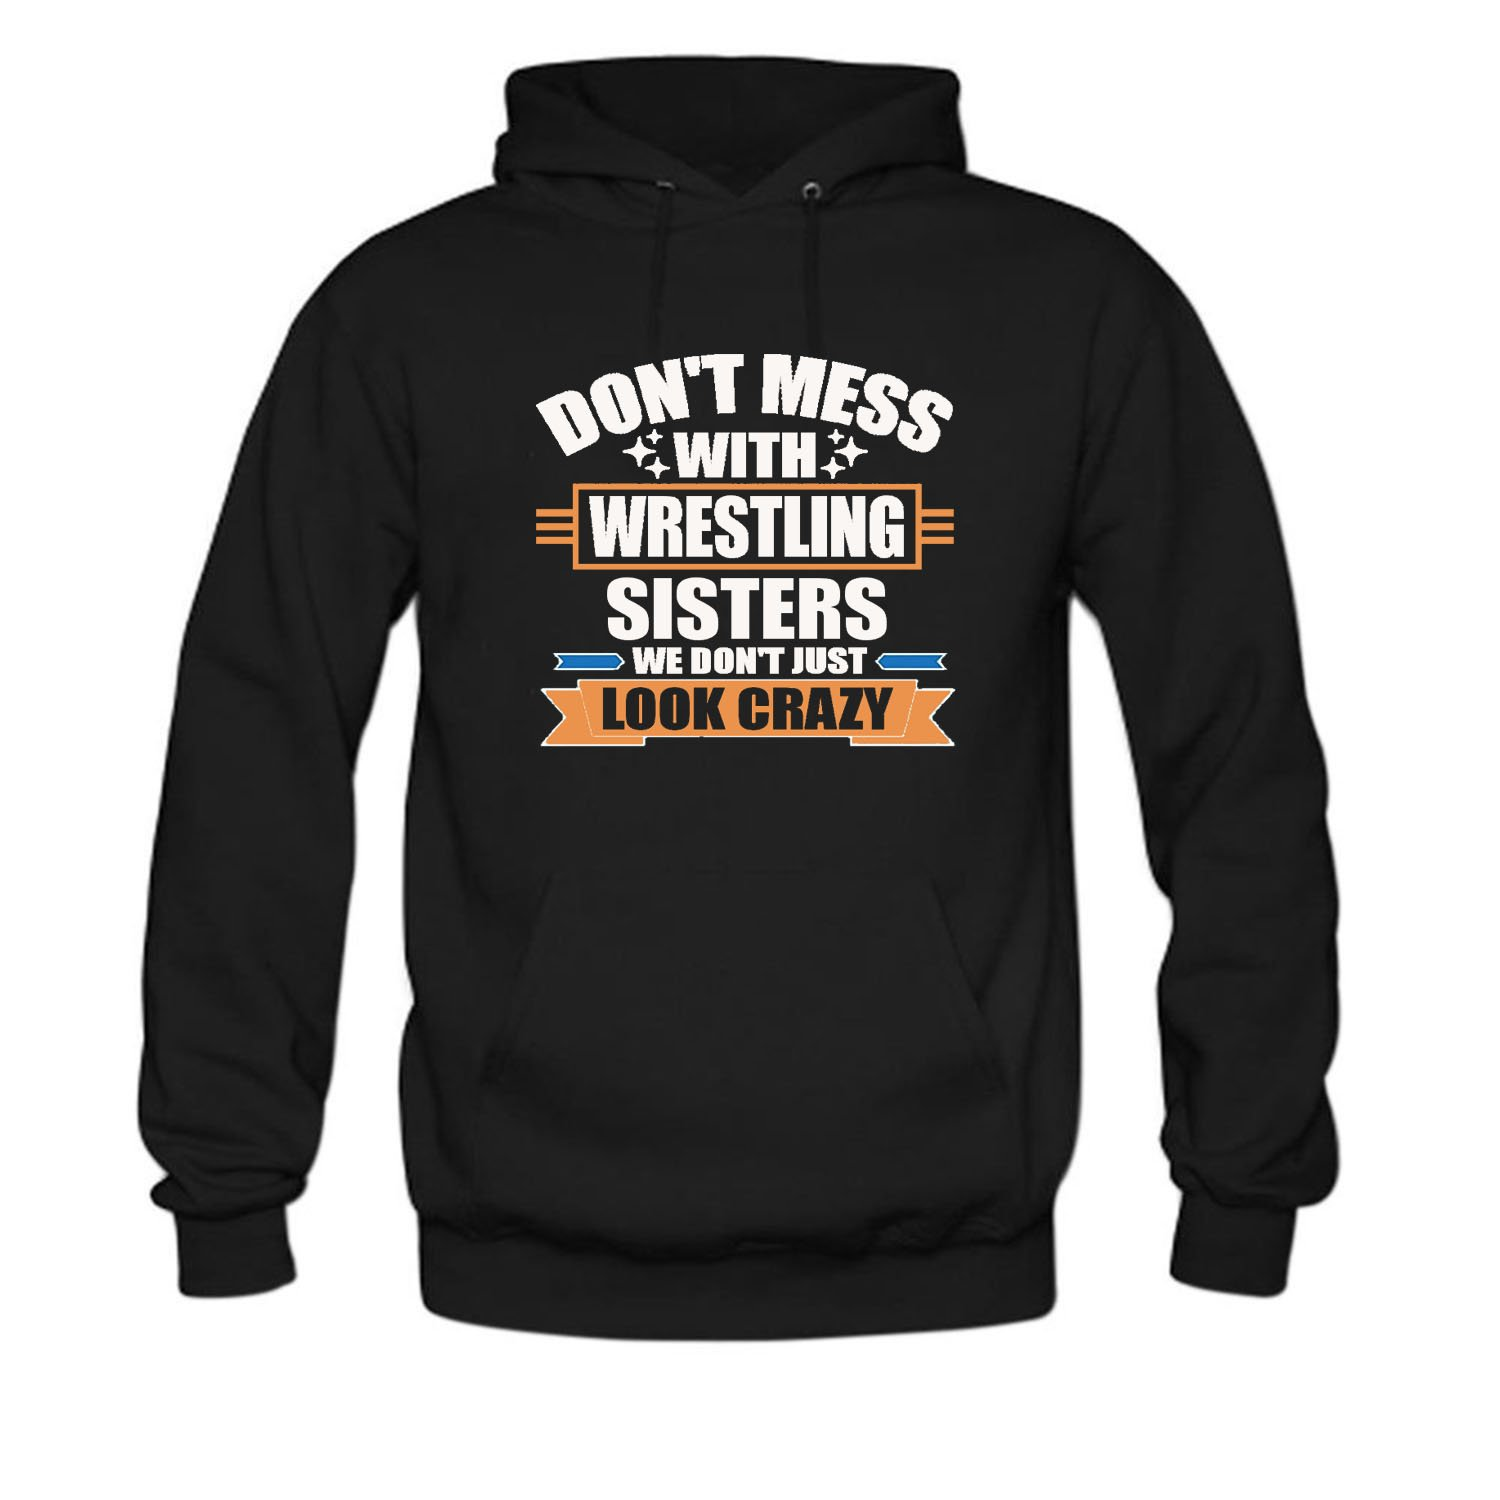 CCBING Women's Don't Mess With Wrestling Sisters We Don't Just Look Crazy Hoodie by CCBING